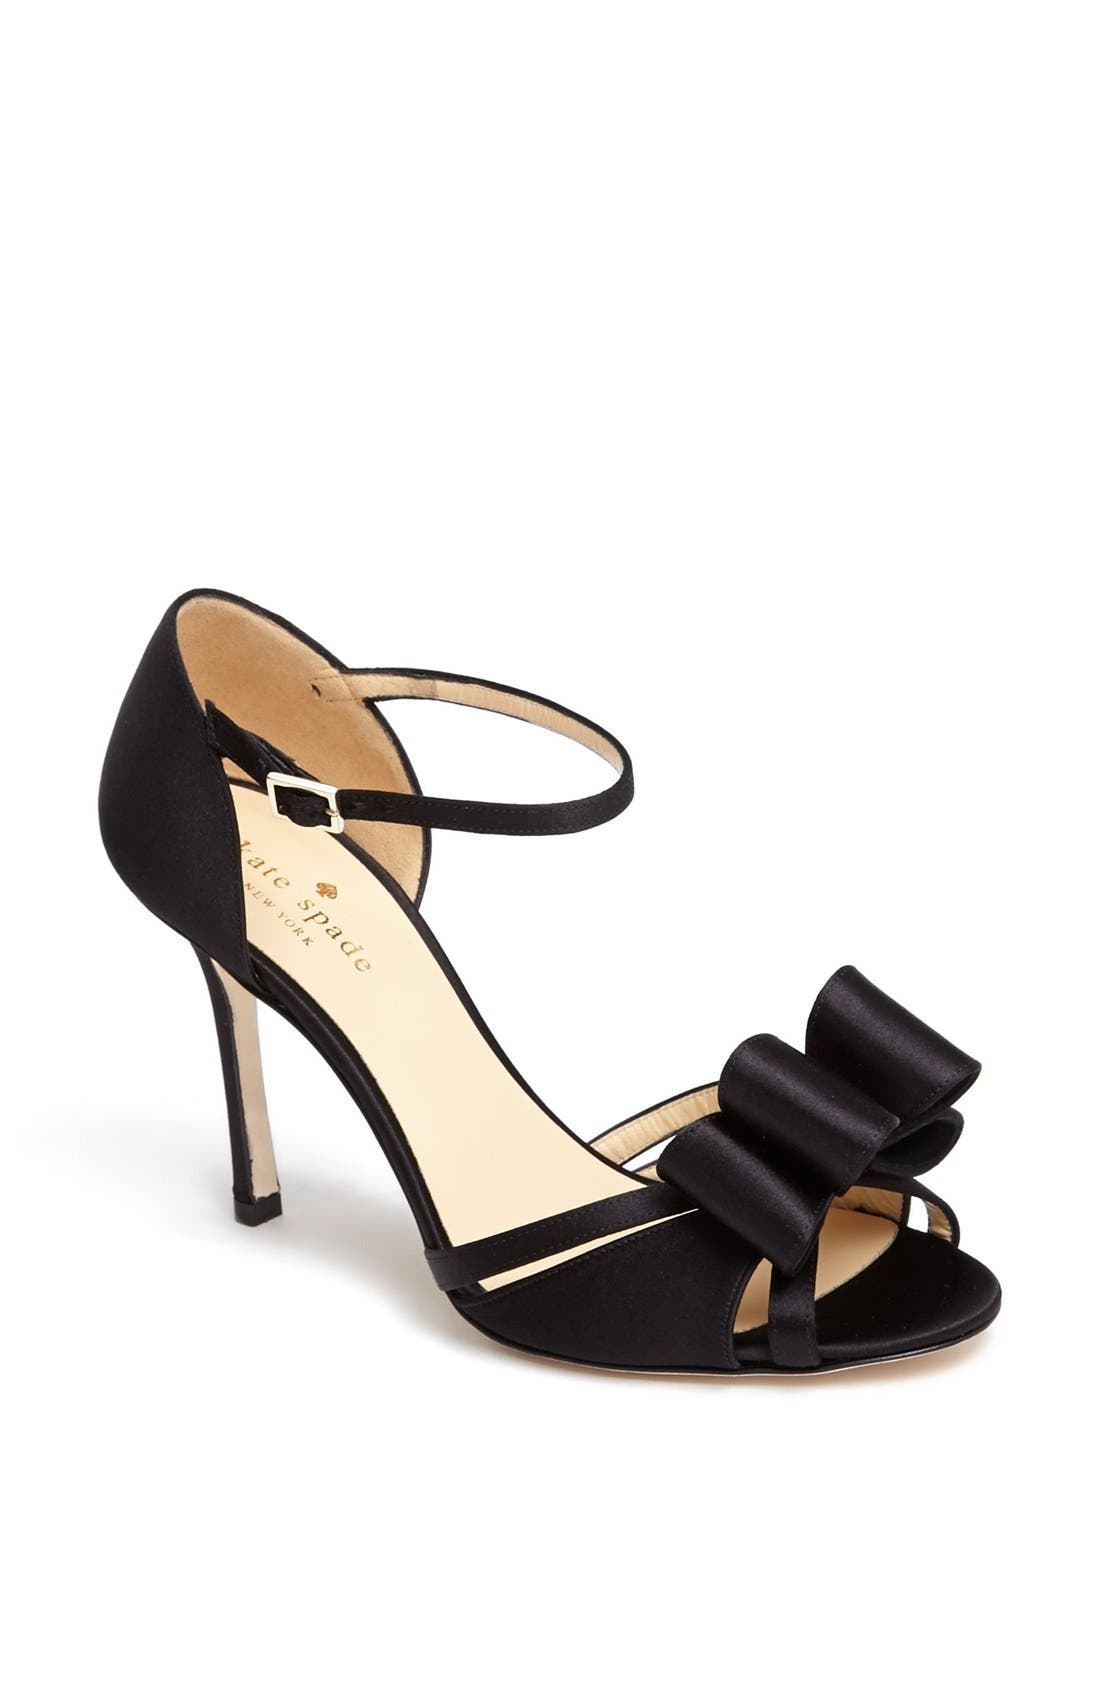 Alternate Image 1 Selected - kate spade new york 'ivela' ankle strap sandal